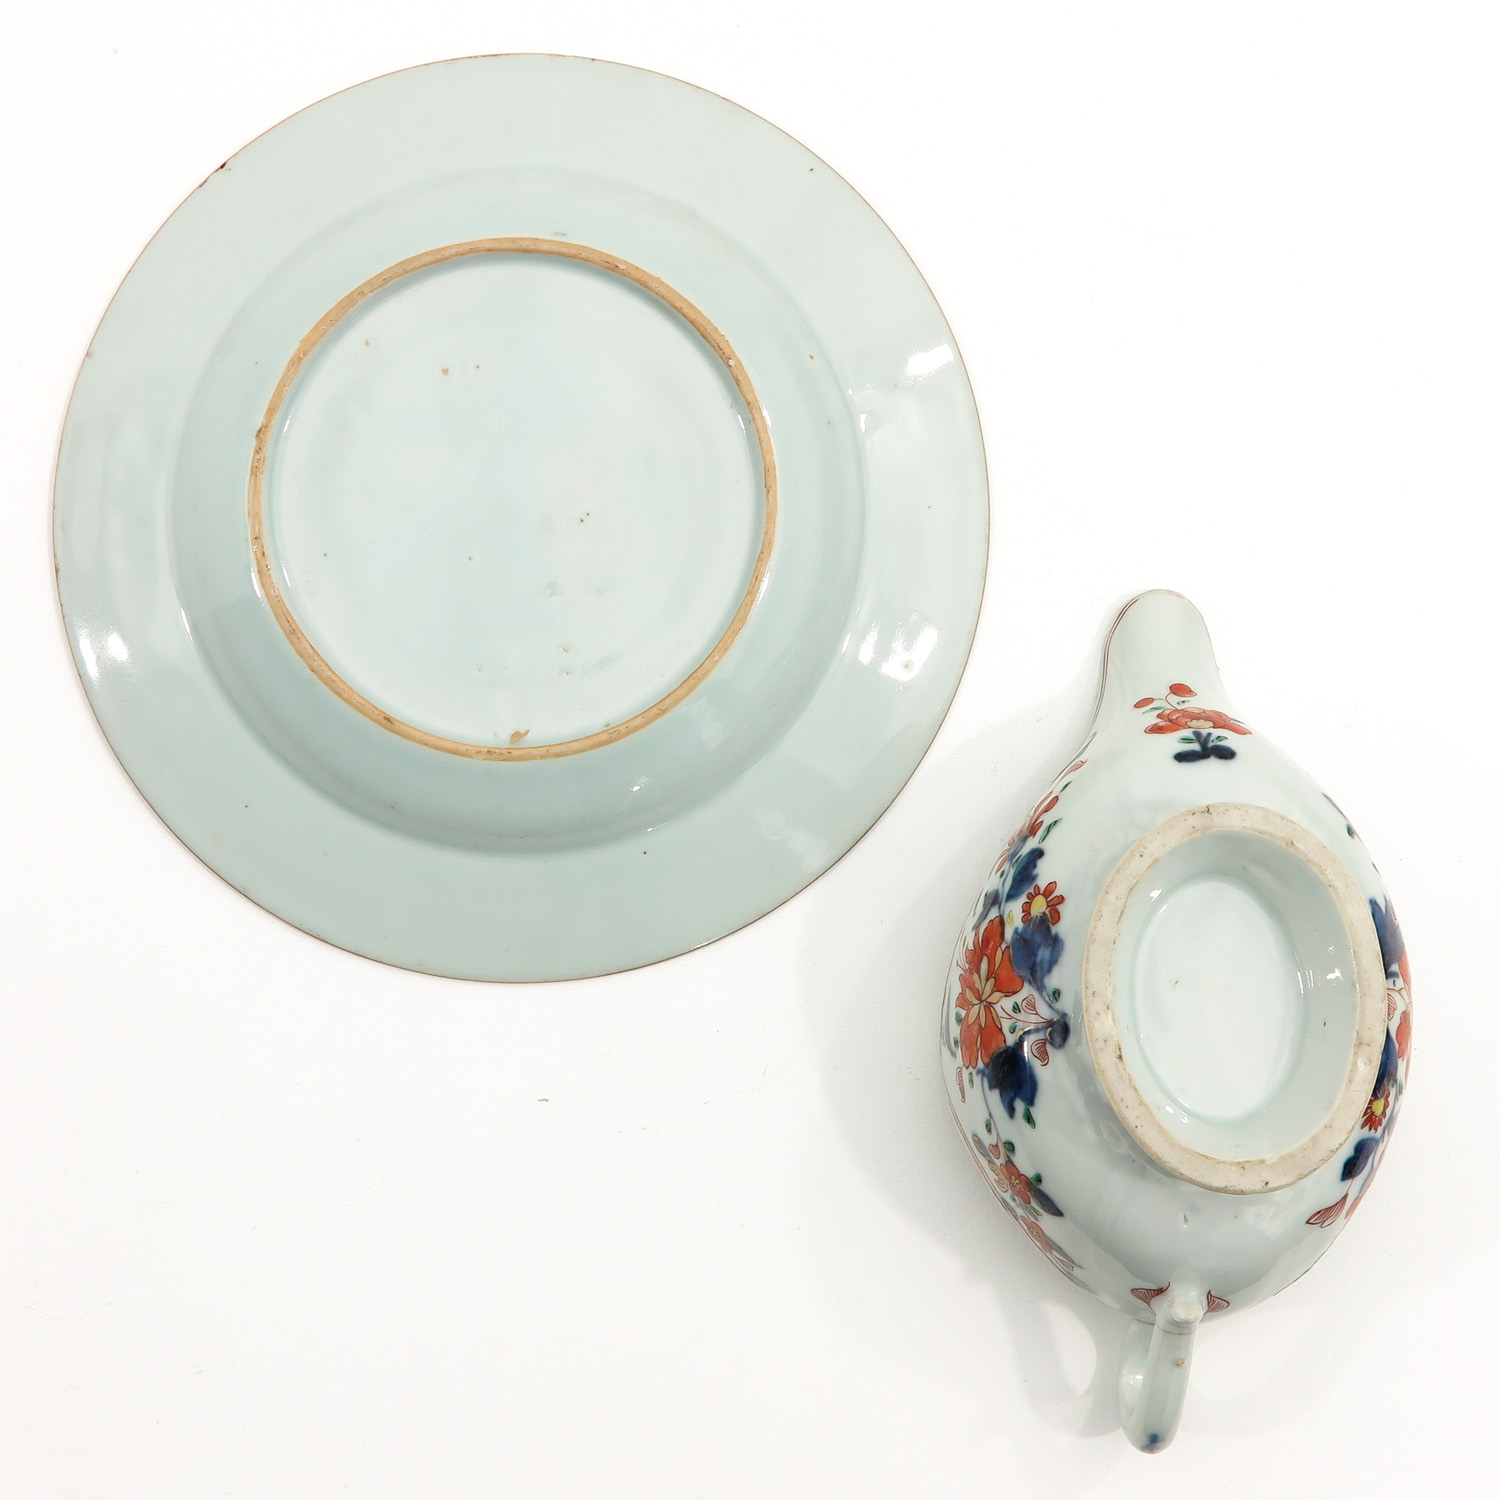 An Imari Plate and Gravy Boat - Image 6 of 10